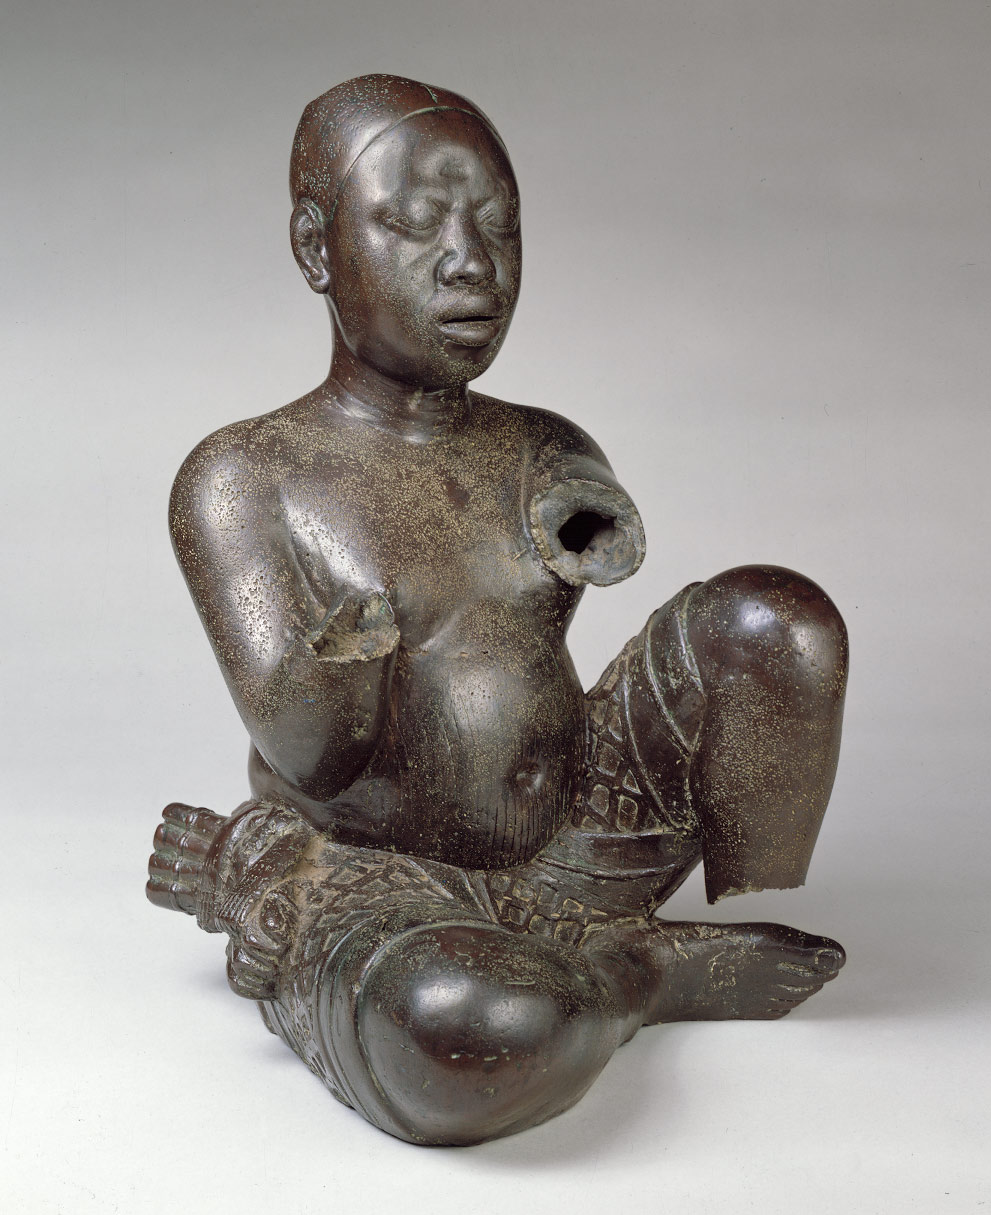 Tada Seated Figure: 13-14th century